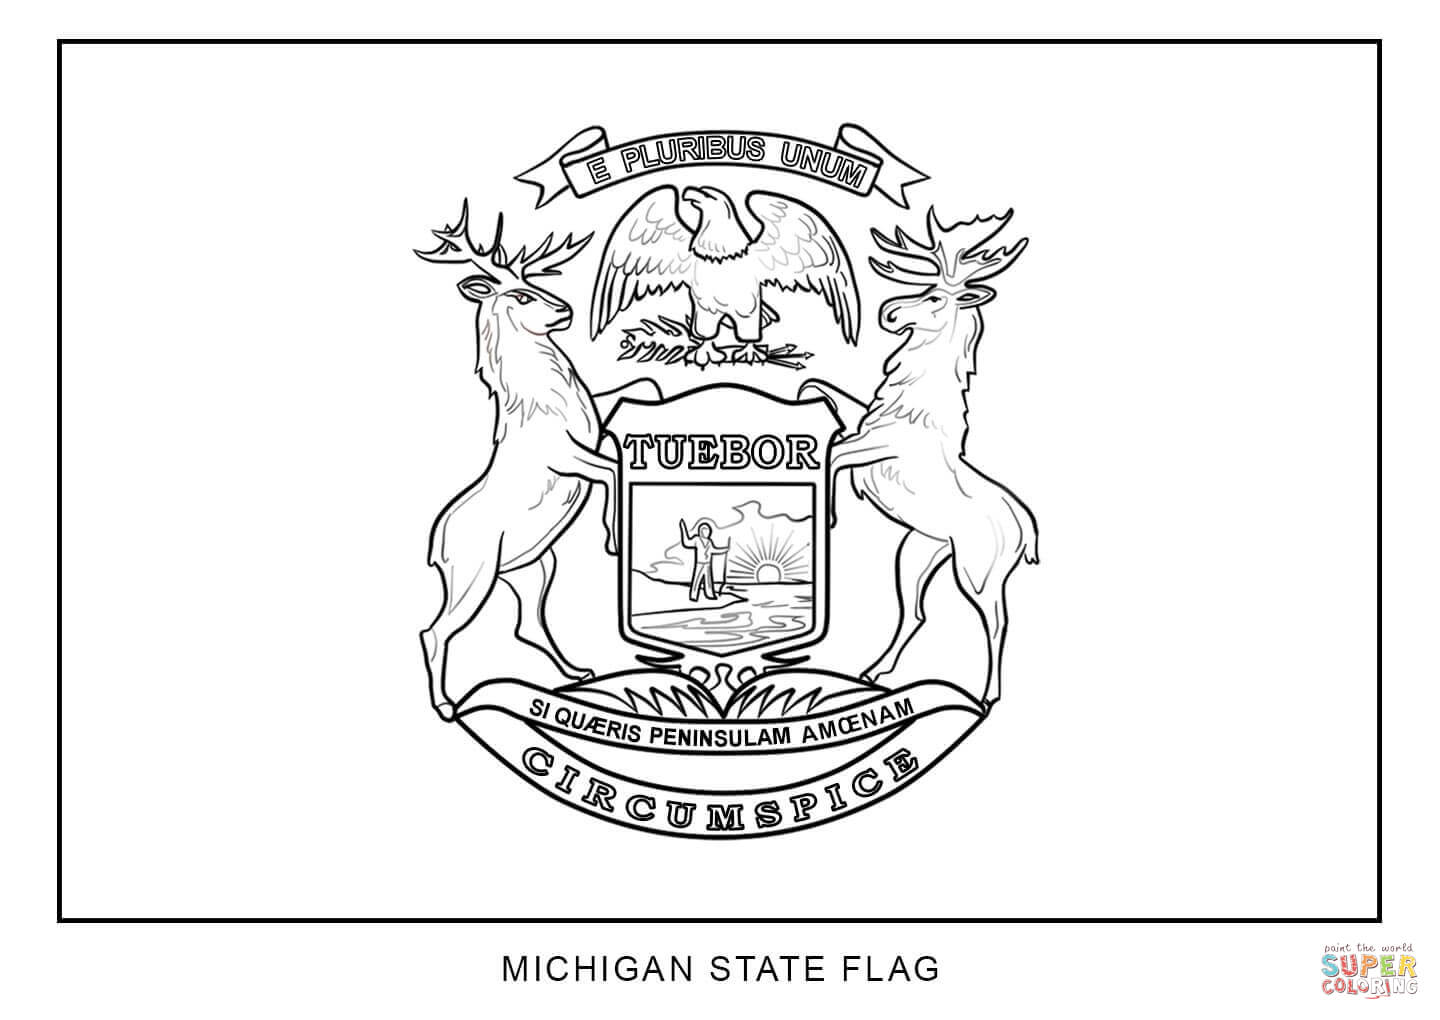 michigan state flag coloring page michigan state flag coloring page flag coloring pages michigan flag state page coloring